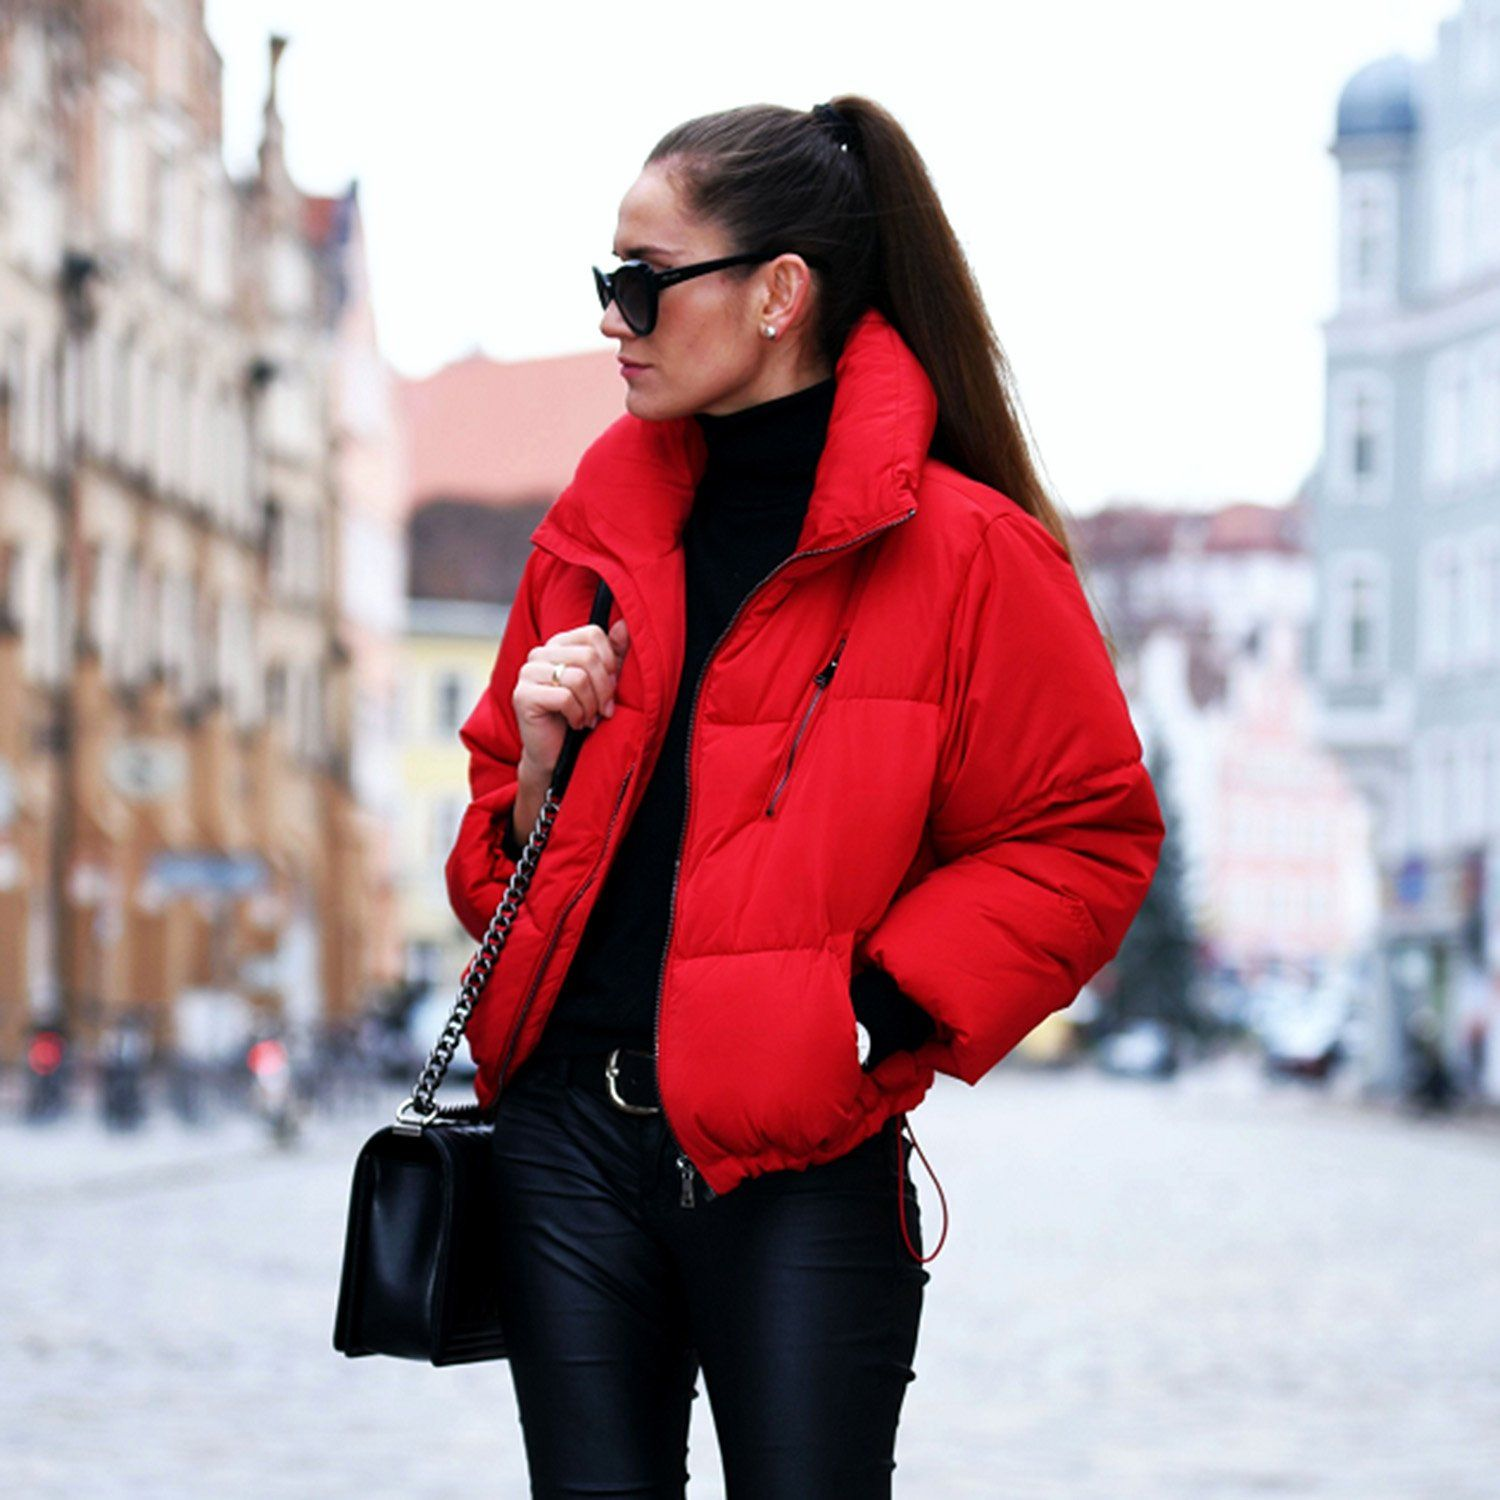 Short Padded Jacket Red Padded Coat Stand Collar Puffer Jacket Lightweight Padded Puffer Coat Winter Red Puffer Jacket Red Jacket Outfit Puffer Jacket Outfit [ 1500 x 1500 Pixel ]